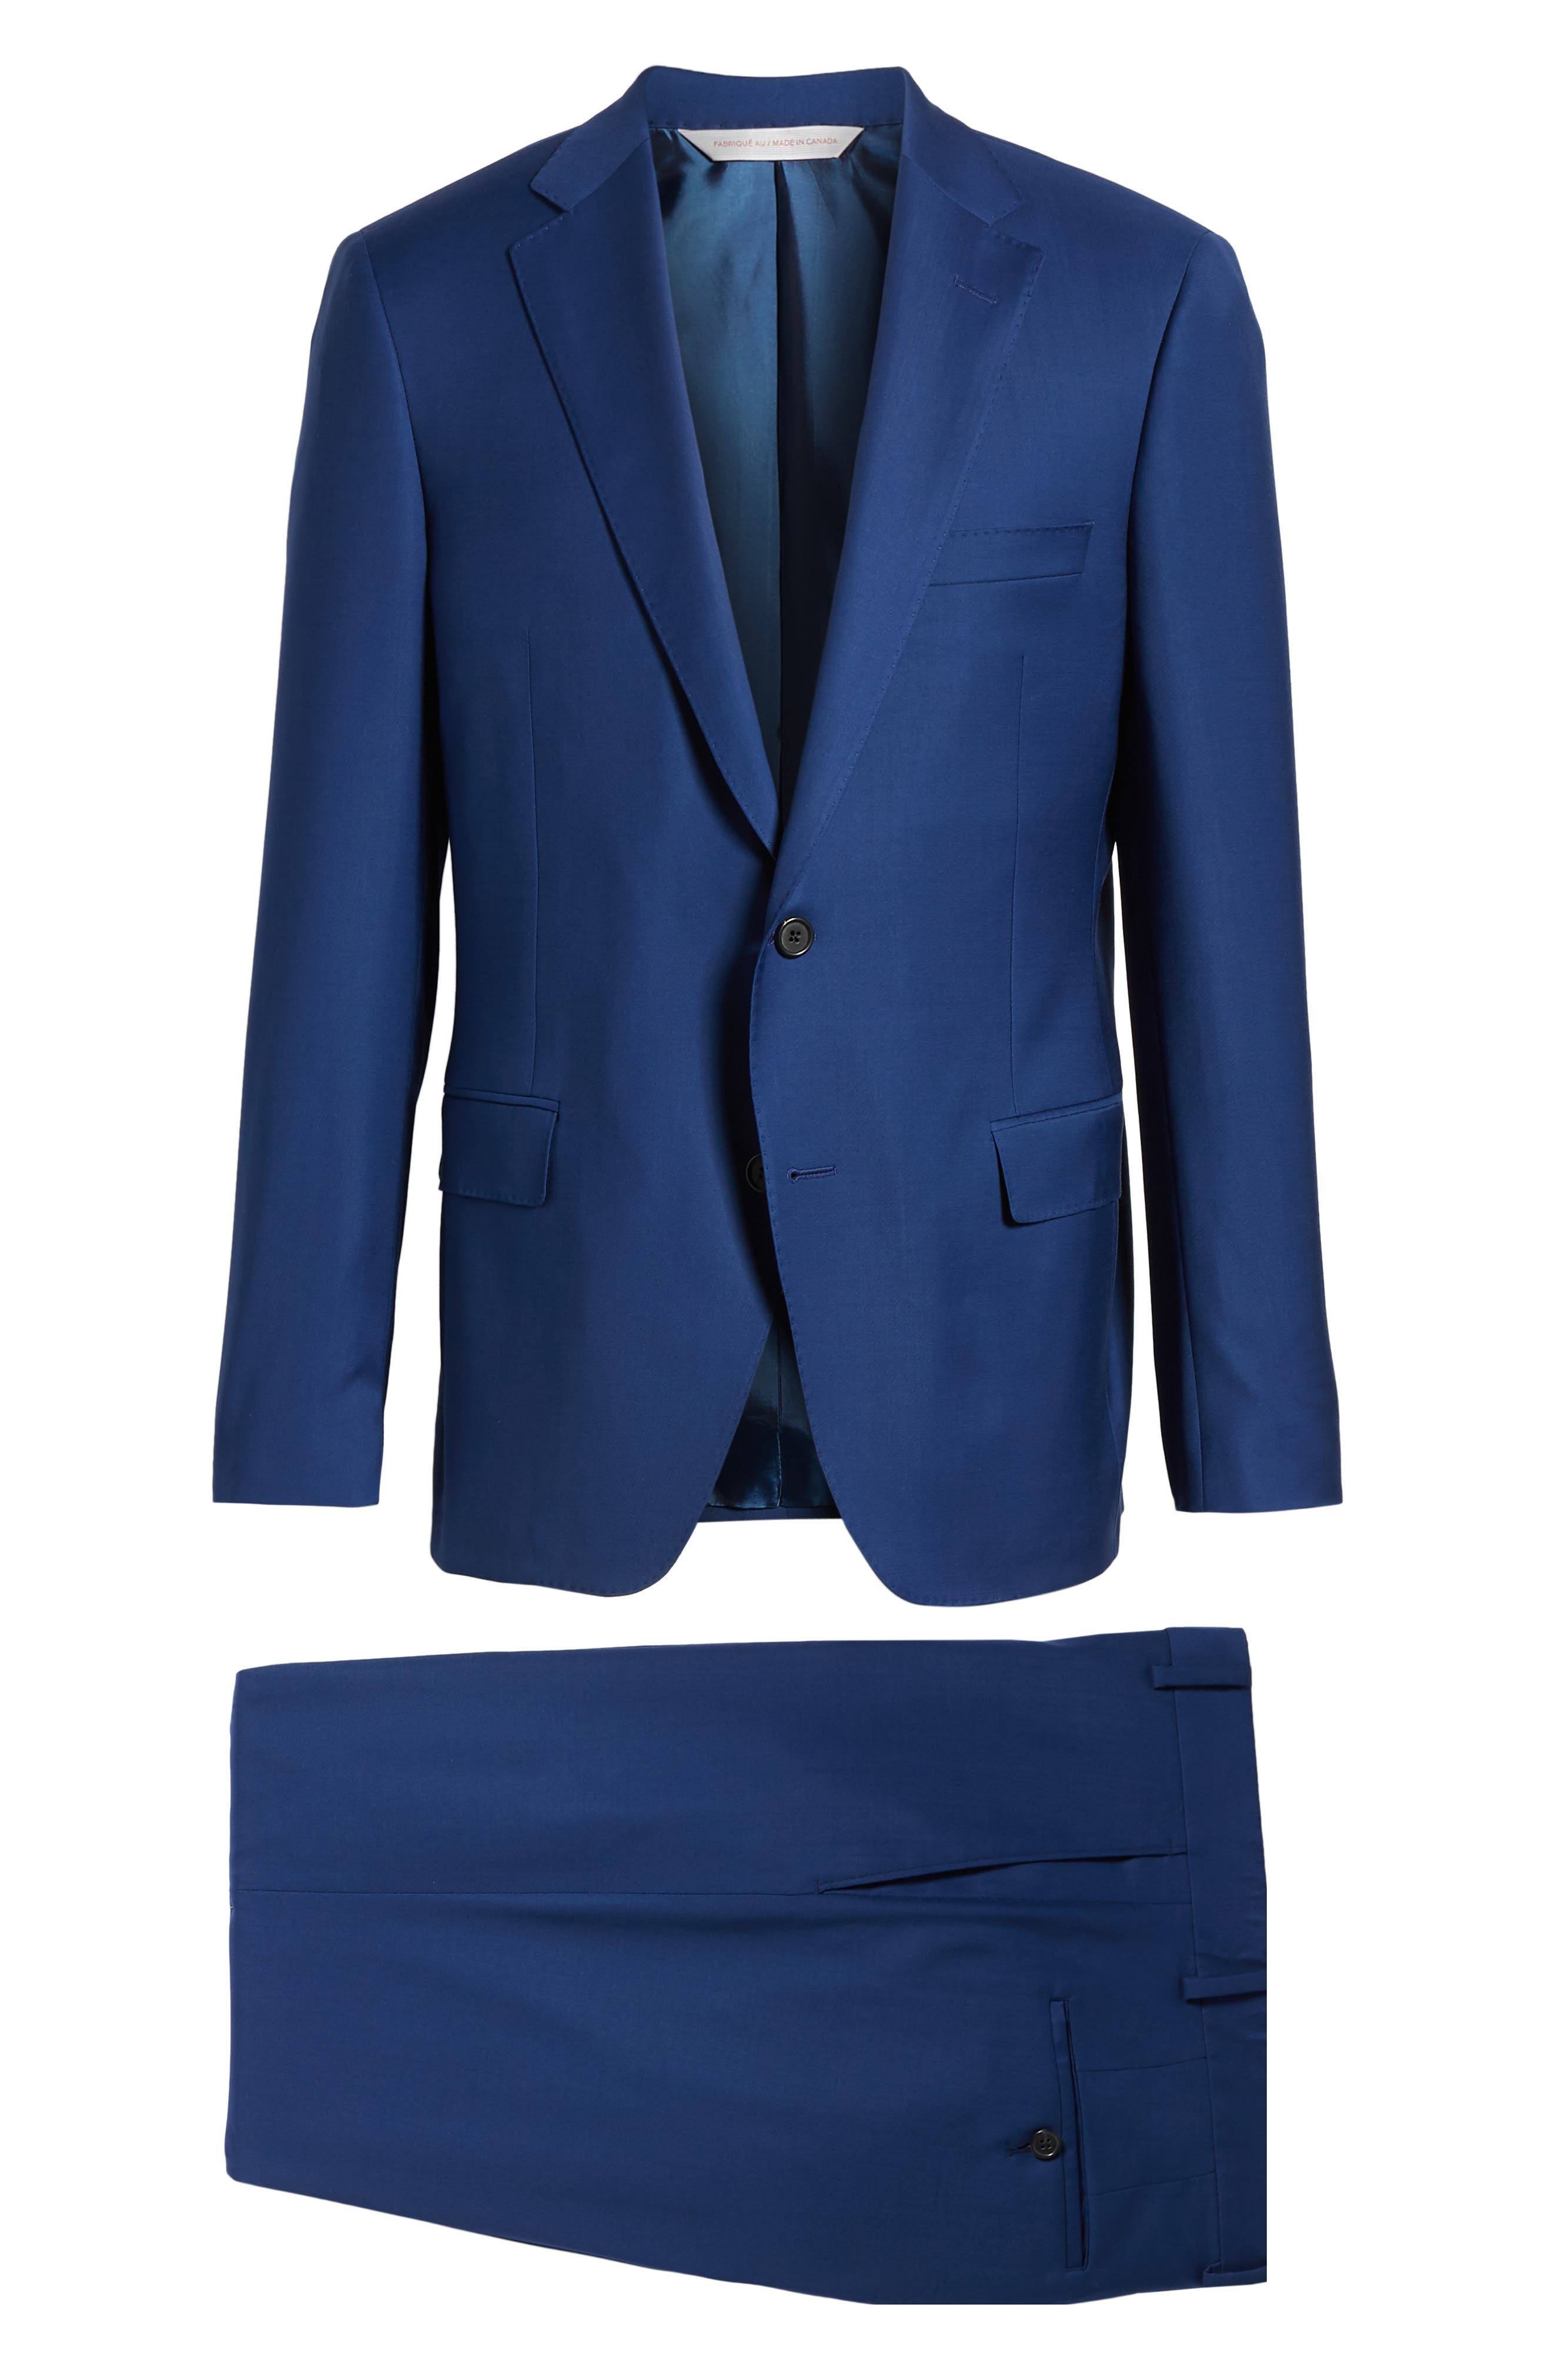 Bennet Classic Fit Solid Wool Suit,                             Alternate thumbnail 8, color,                             400